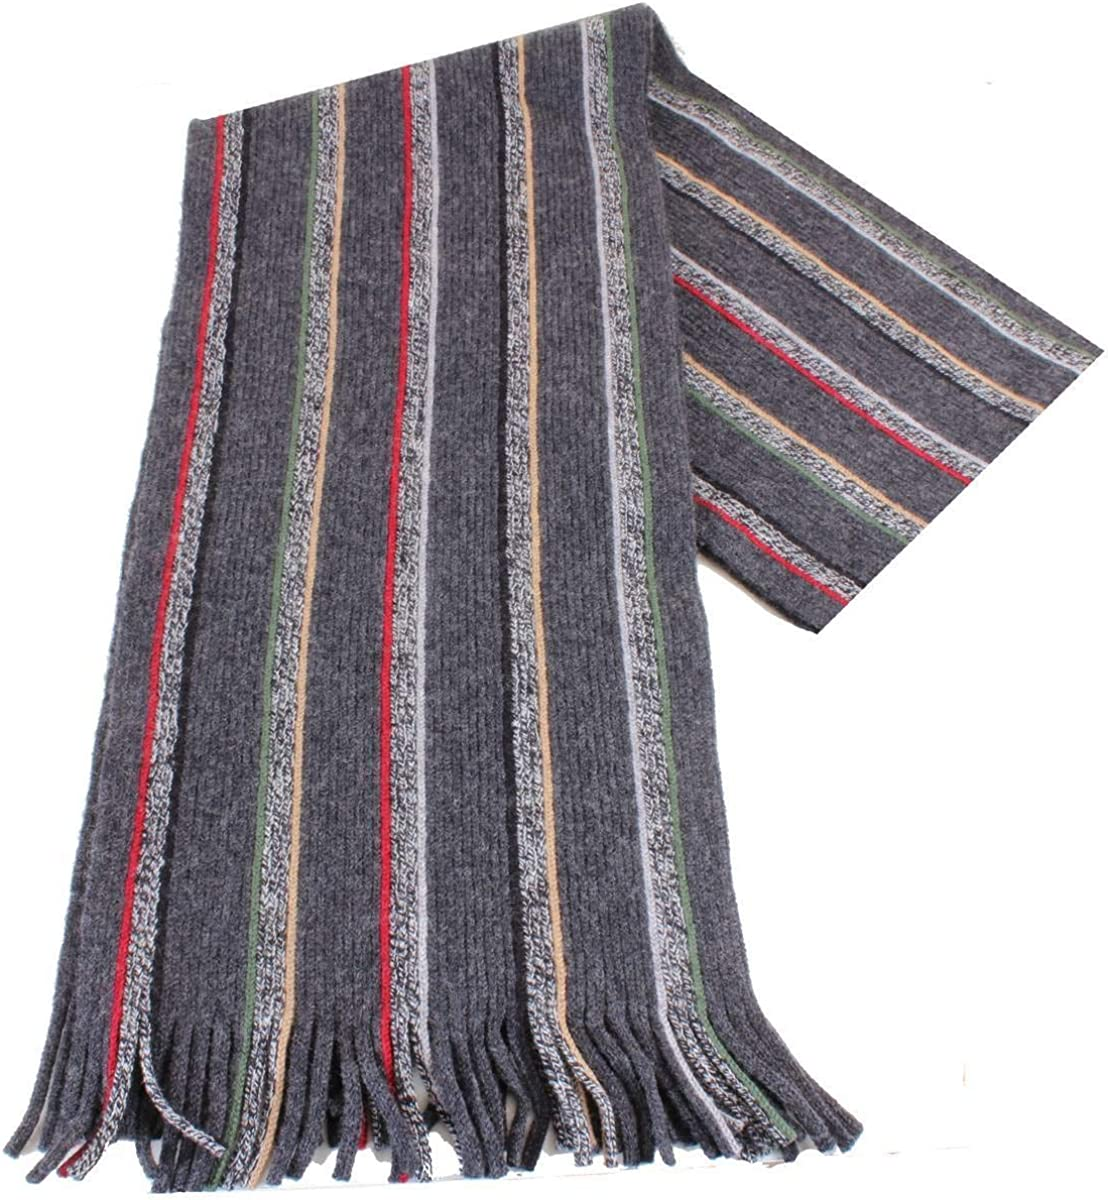 Bassin and Brown Mens Seeler Striped Wool Scarf - Grey/Red/Beige